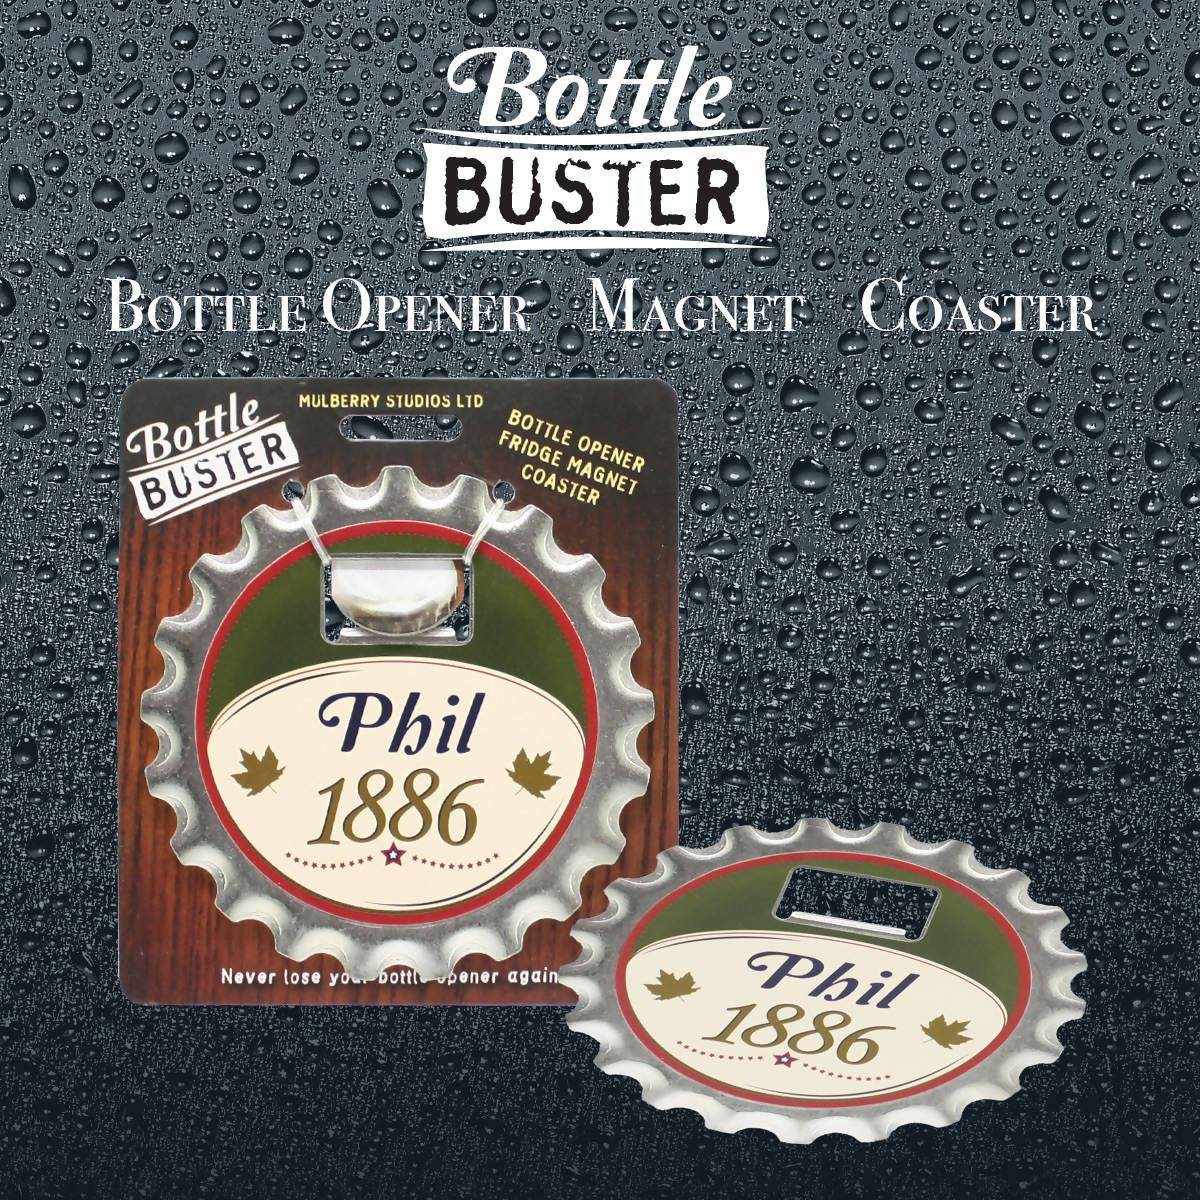 BOTTLE BUSTER - Best Bottle Opener : Phil - Bottle Openers - La Belle Collection - Naiise